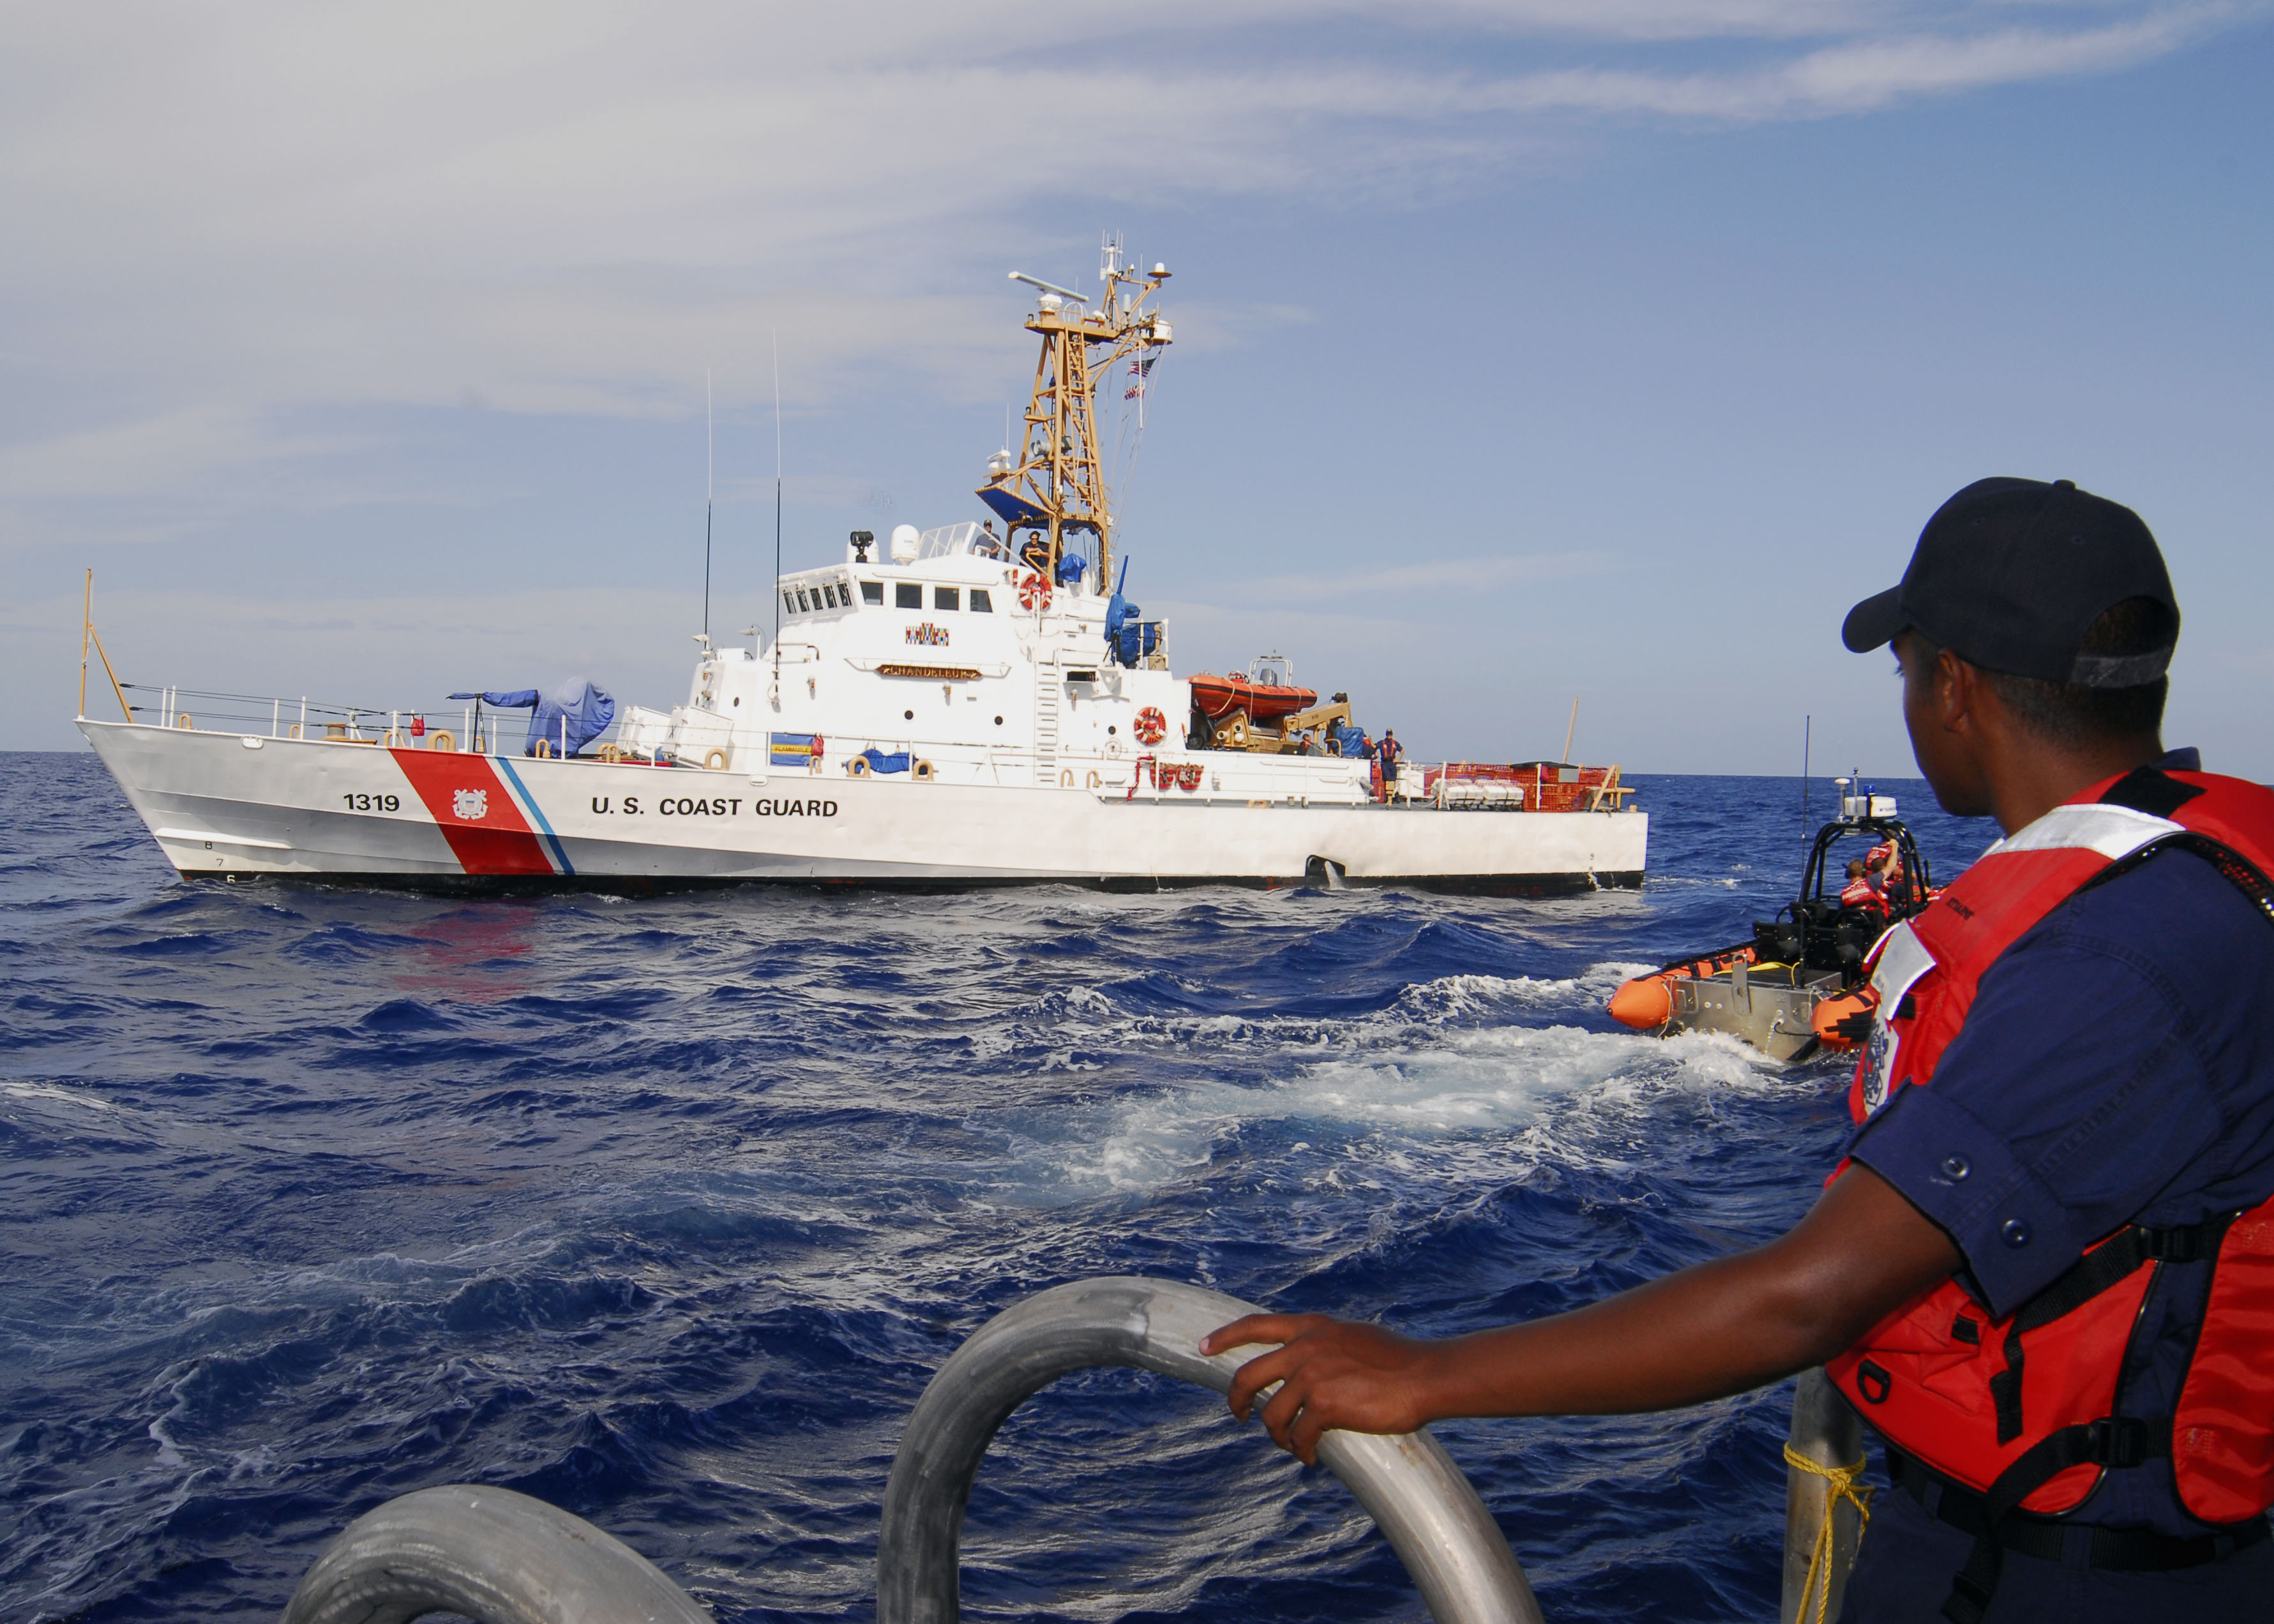 Coast Guard strained by budget constraints